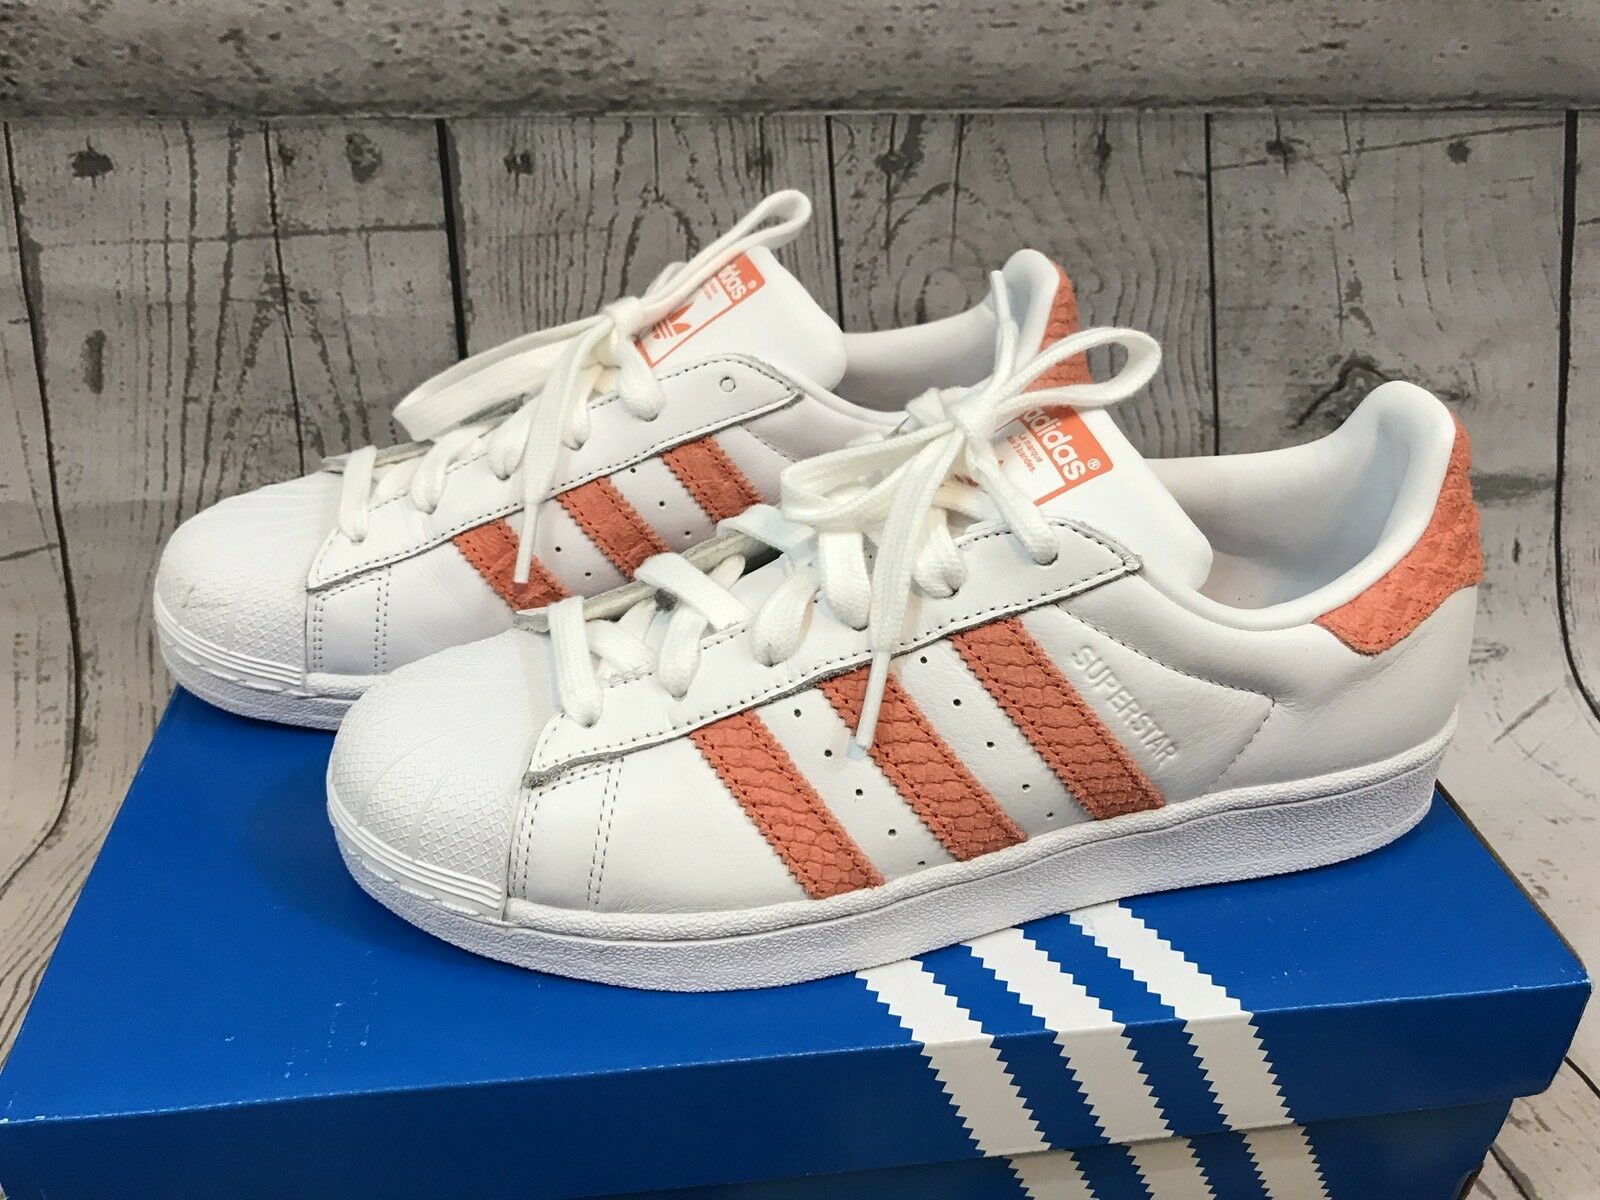 Adidas Originals Womens Superstar Coral Peach White Sneakers Shoes Size 7.5 NWT